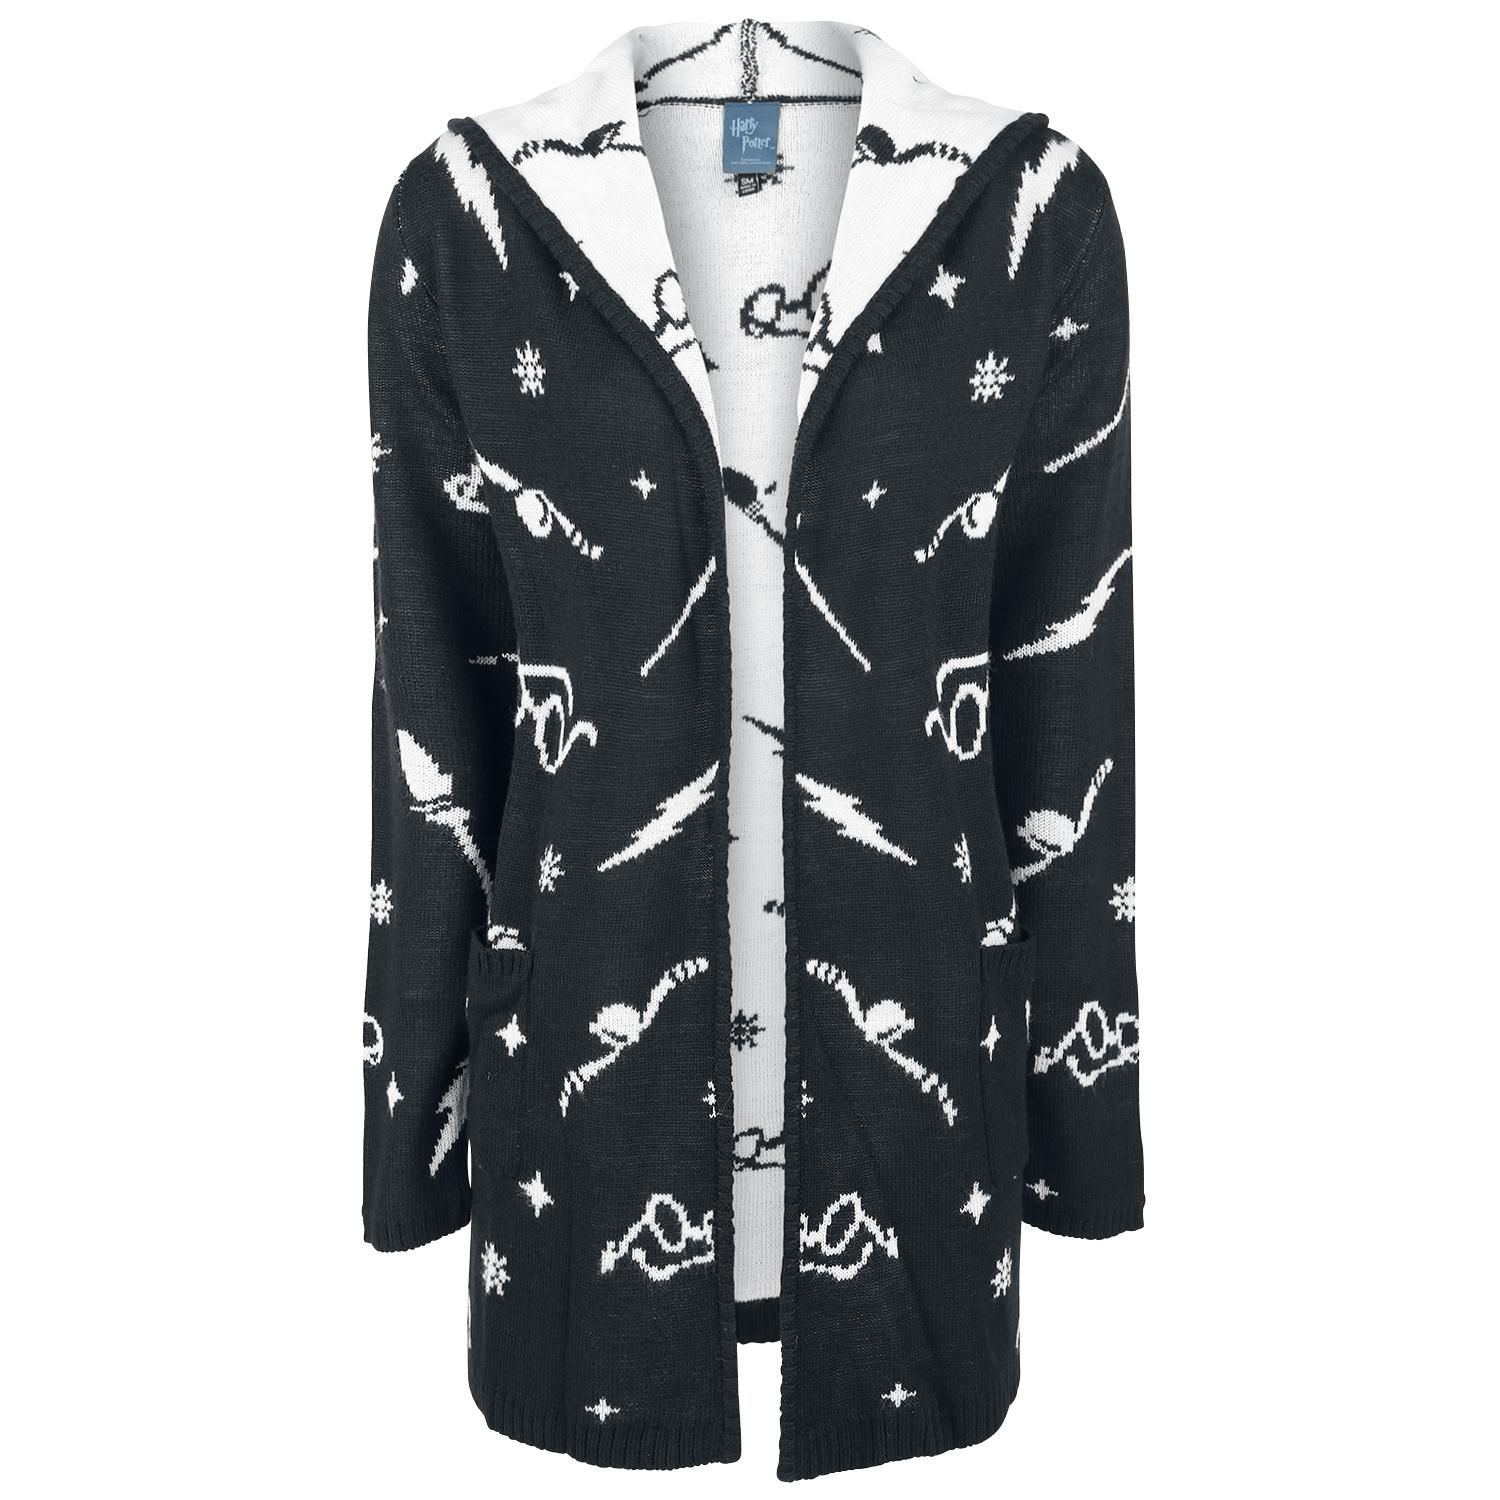 Quidditch - Cardigan by Harry Potter